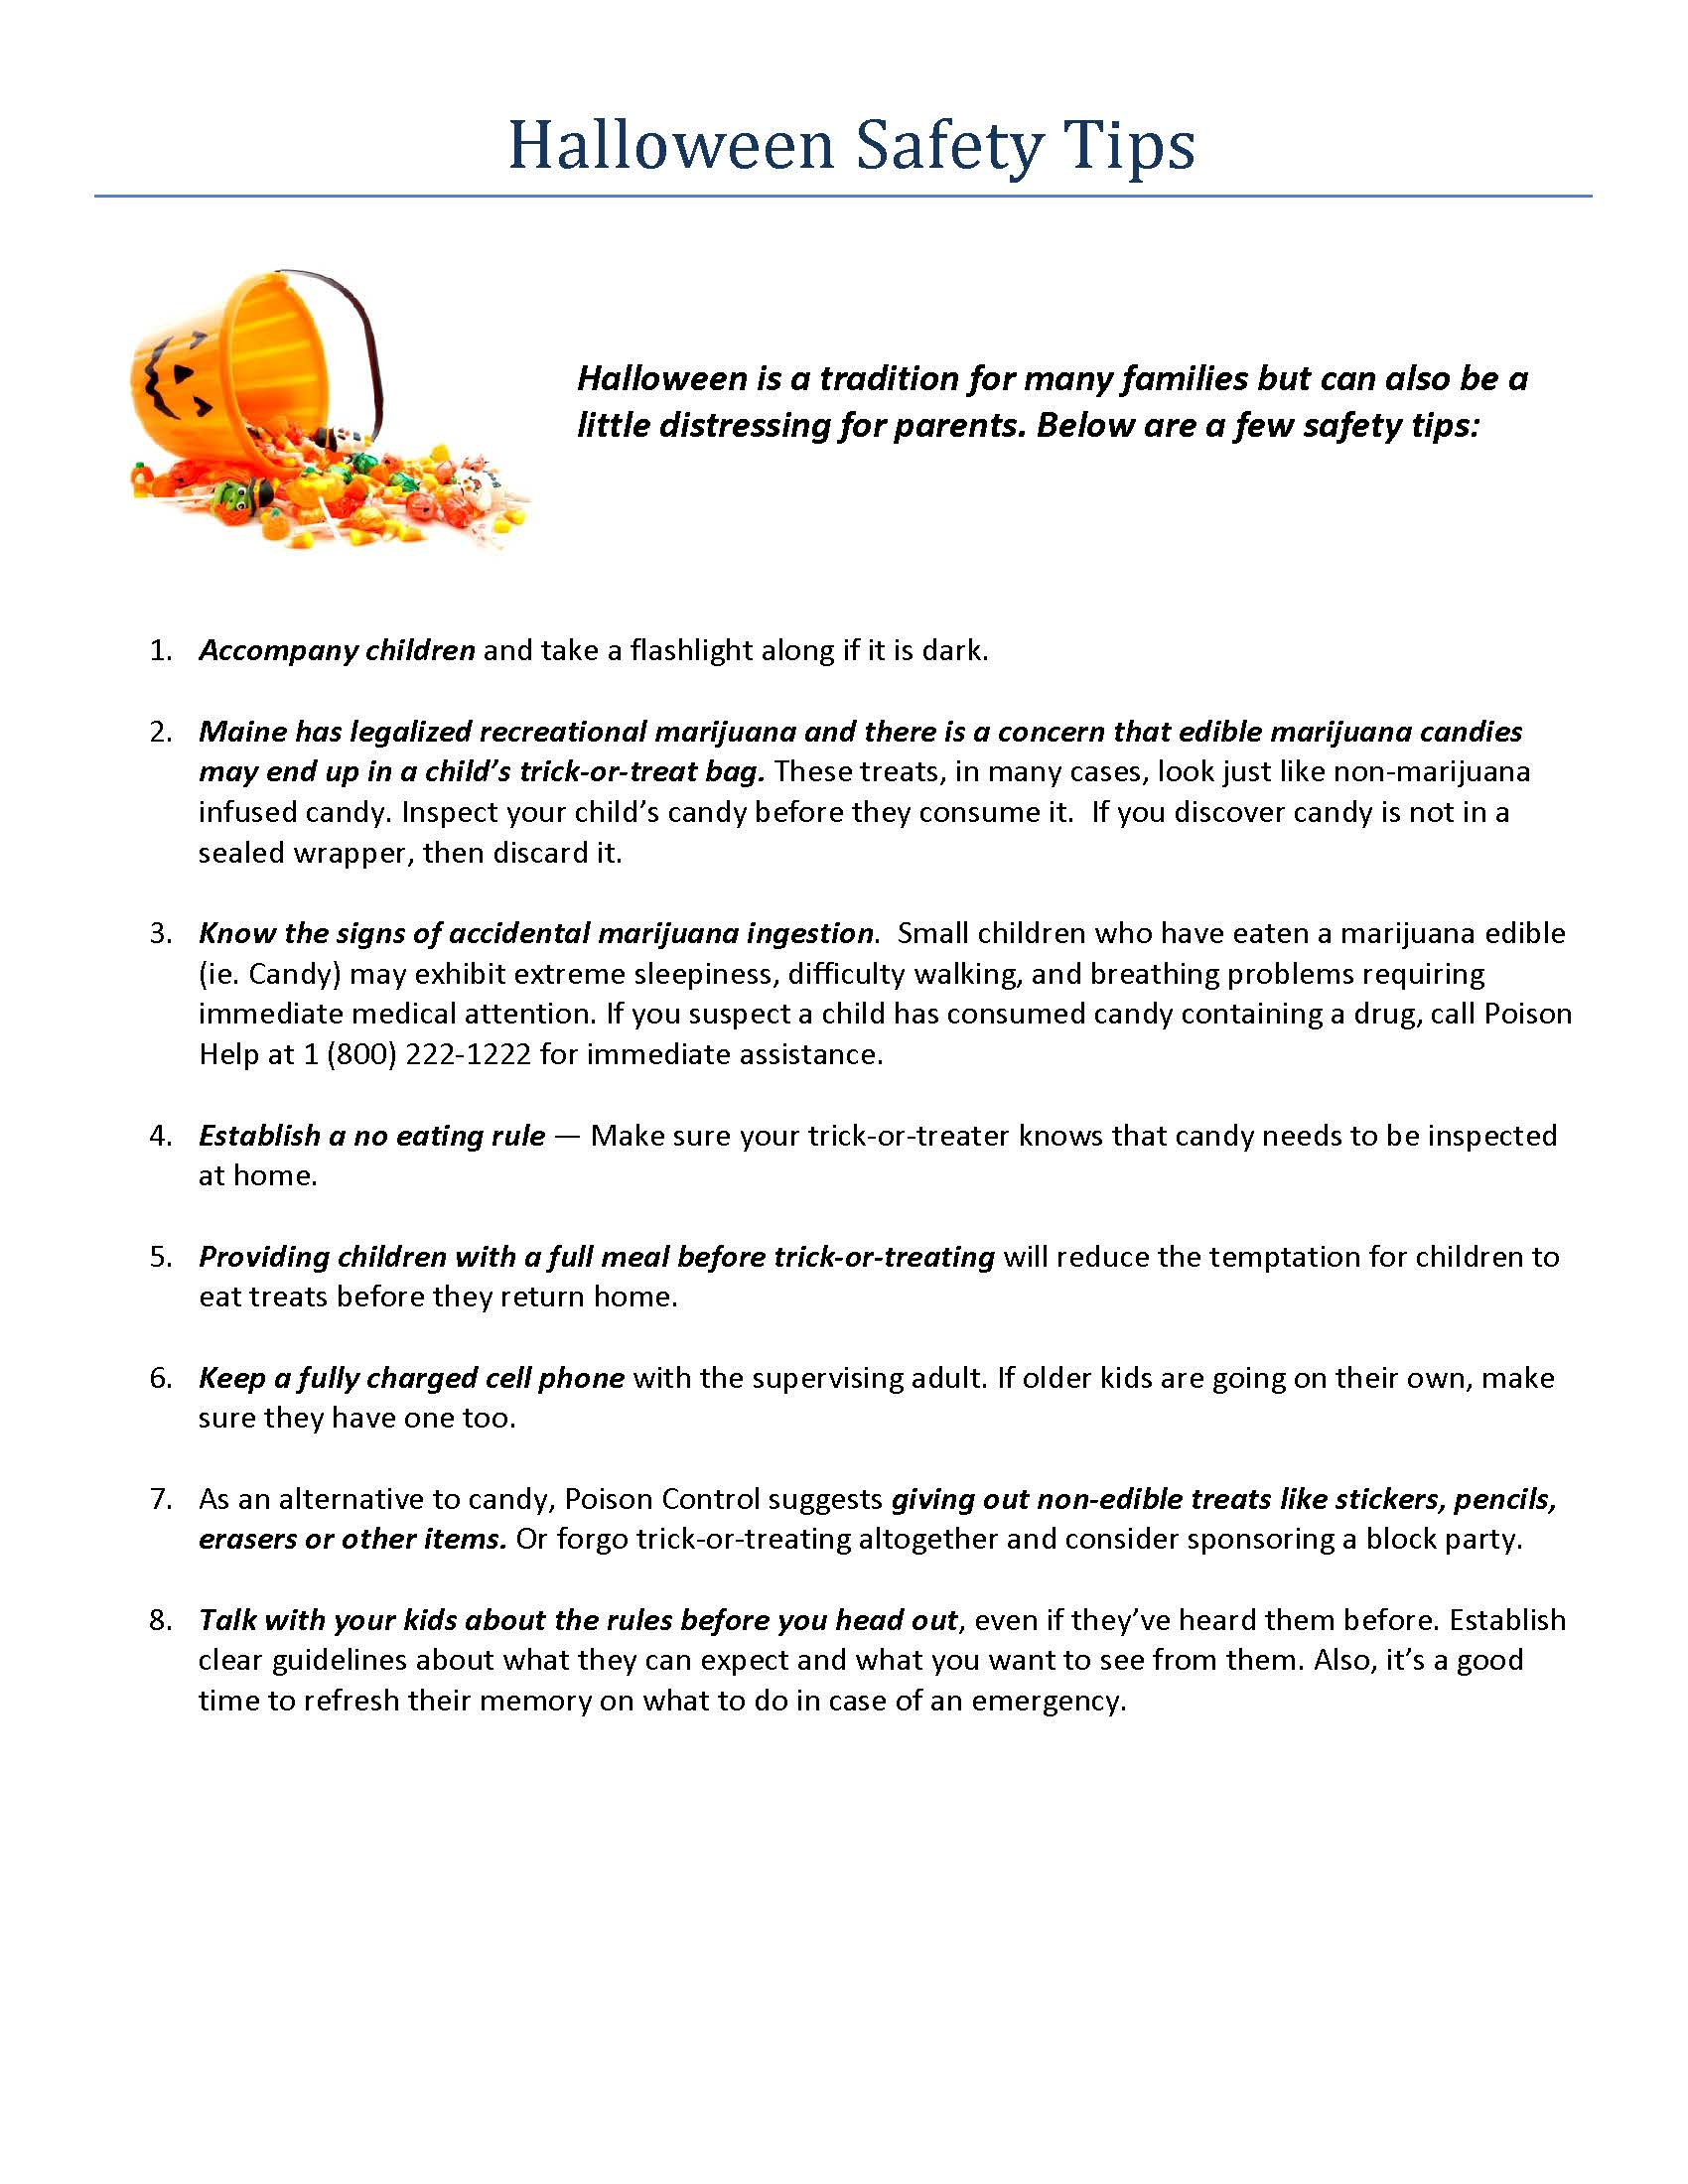 news events halloween safety tips